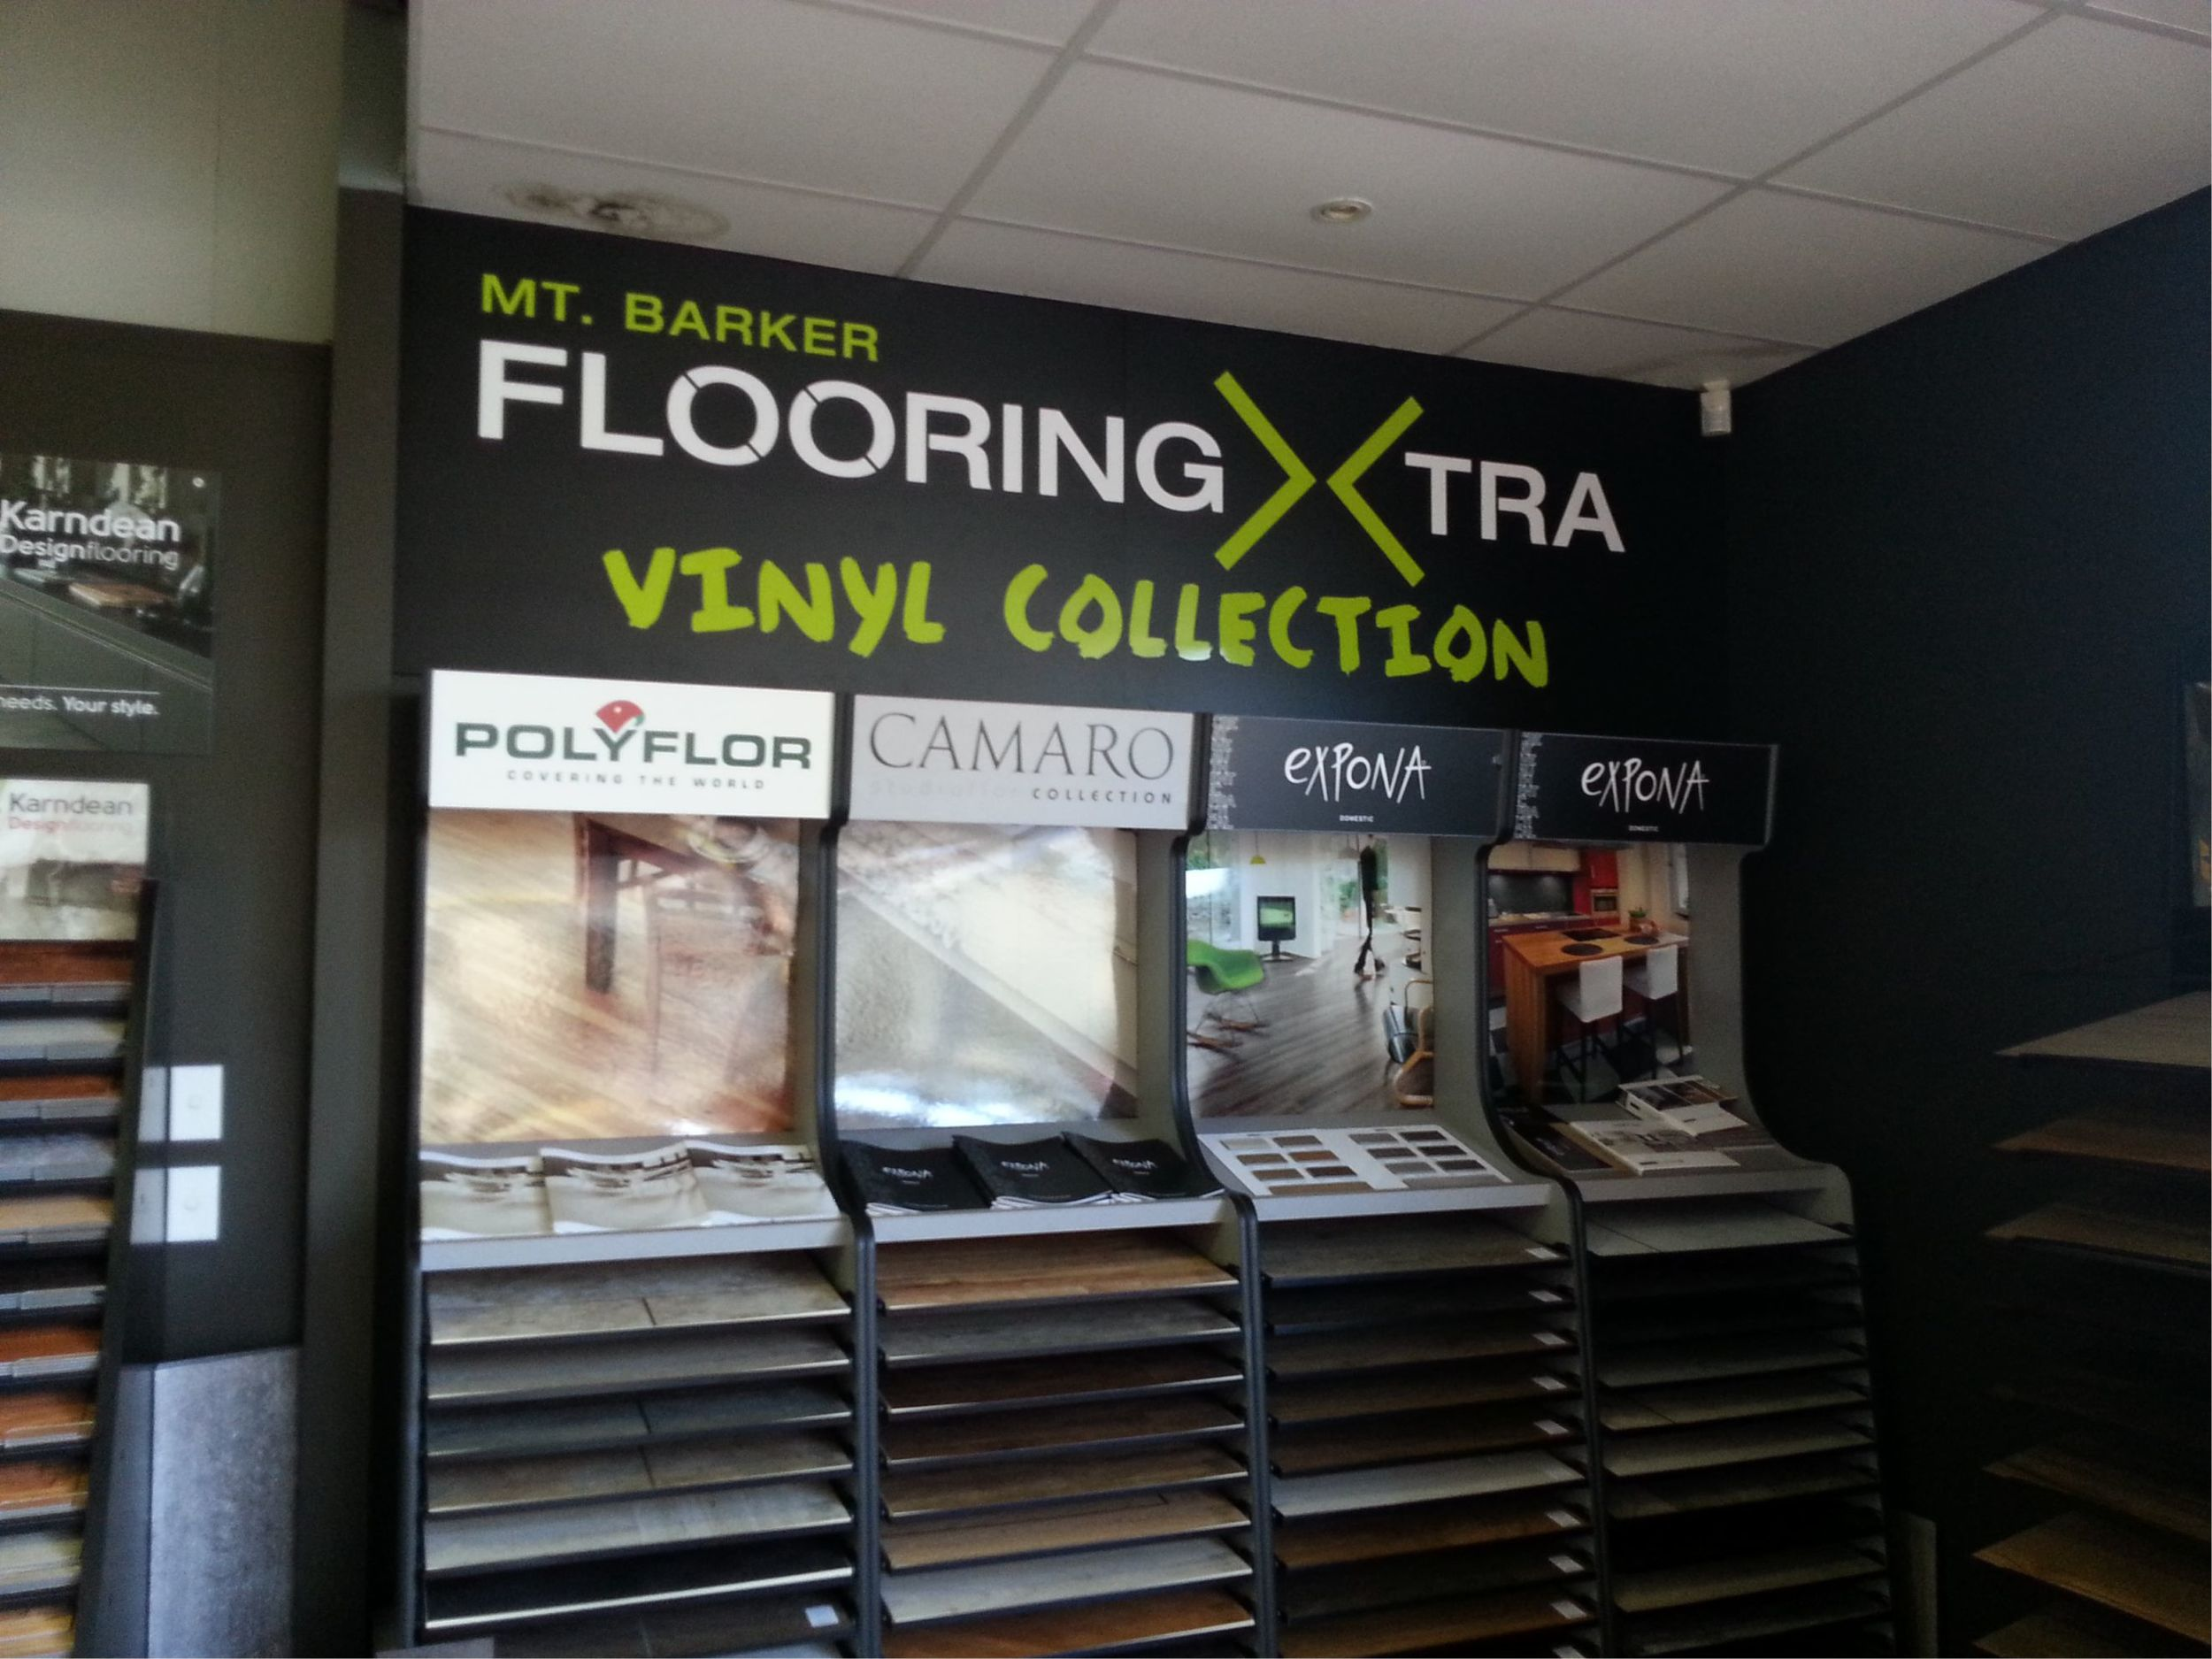 Flooring Sign Colour - Sign Adelaide - Signage Adelaide - Banner Adelaide - Signage Adelaide - Sign Lonsdale - Sign Aldinga - Sign Morphett Vale - Sign Victor Harbor - A Frame Signs.jpg